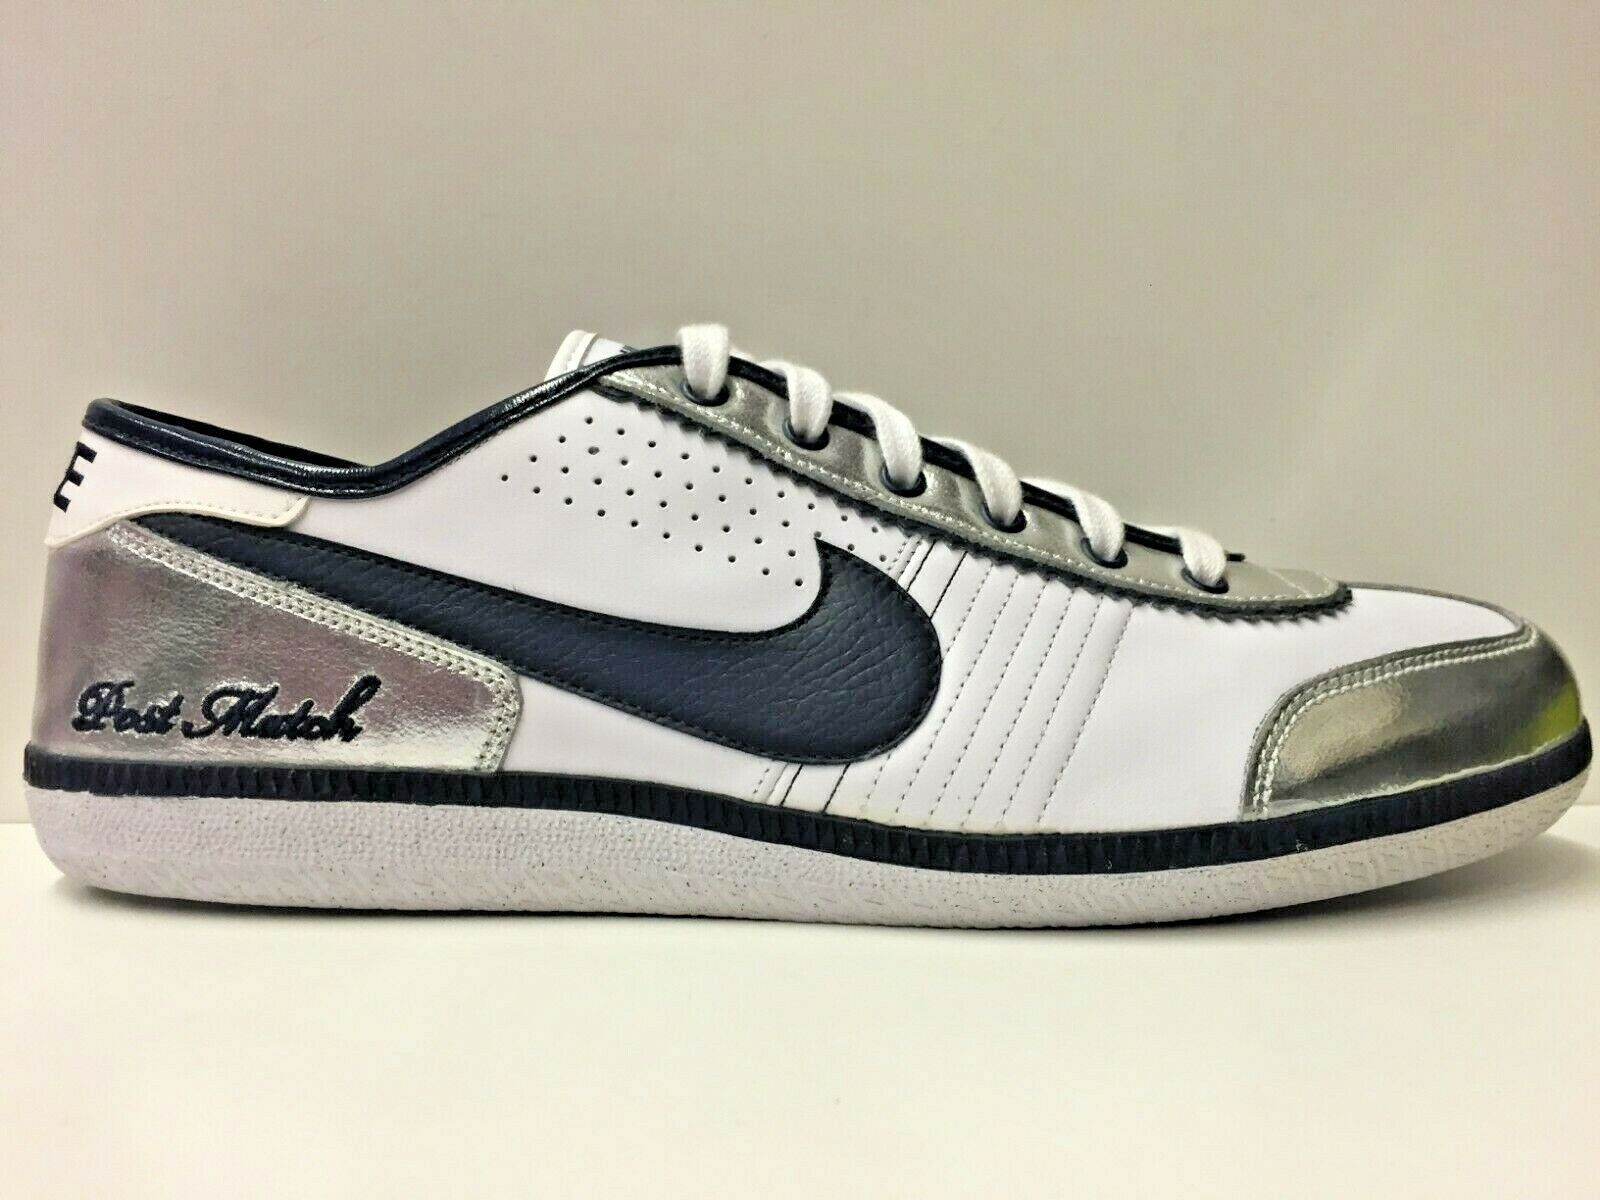 SCARPE SNEAKERS UOMO NIKE ORIGINALE POST MATCH PLUS 366364 PELLE P/E NUOVO